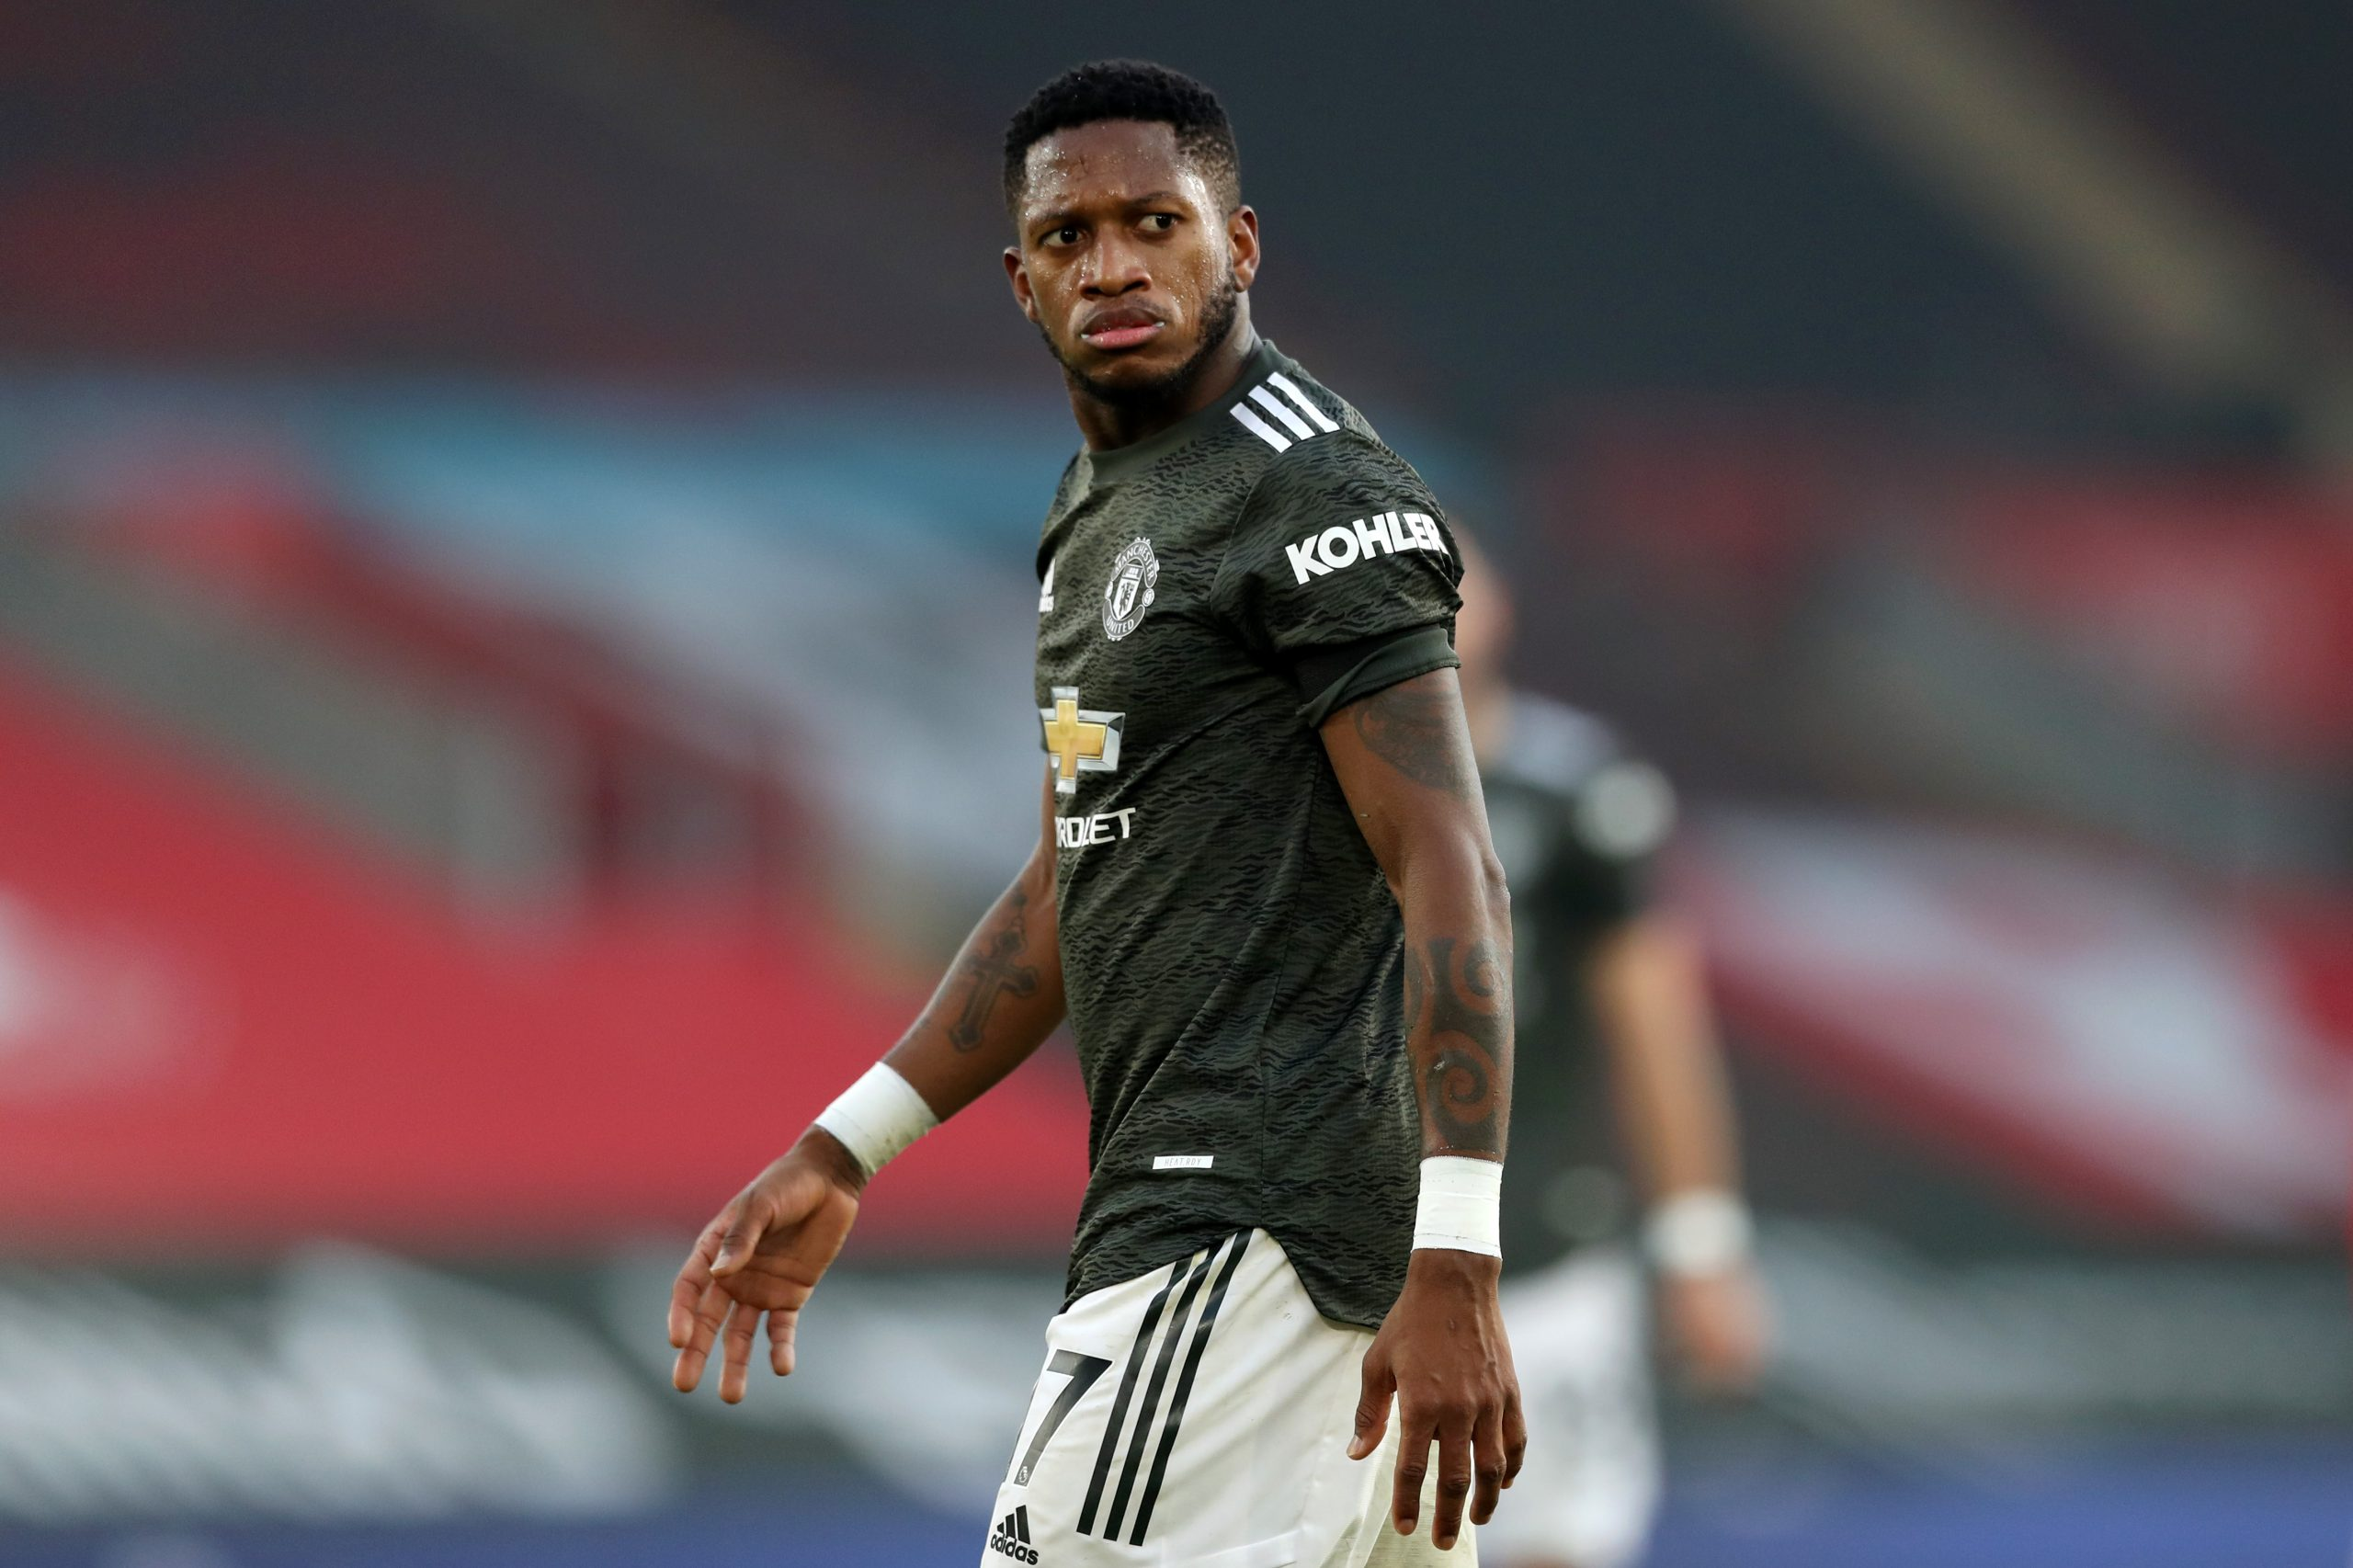 Fred in action for Manchester United. (GETTY Images)